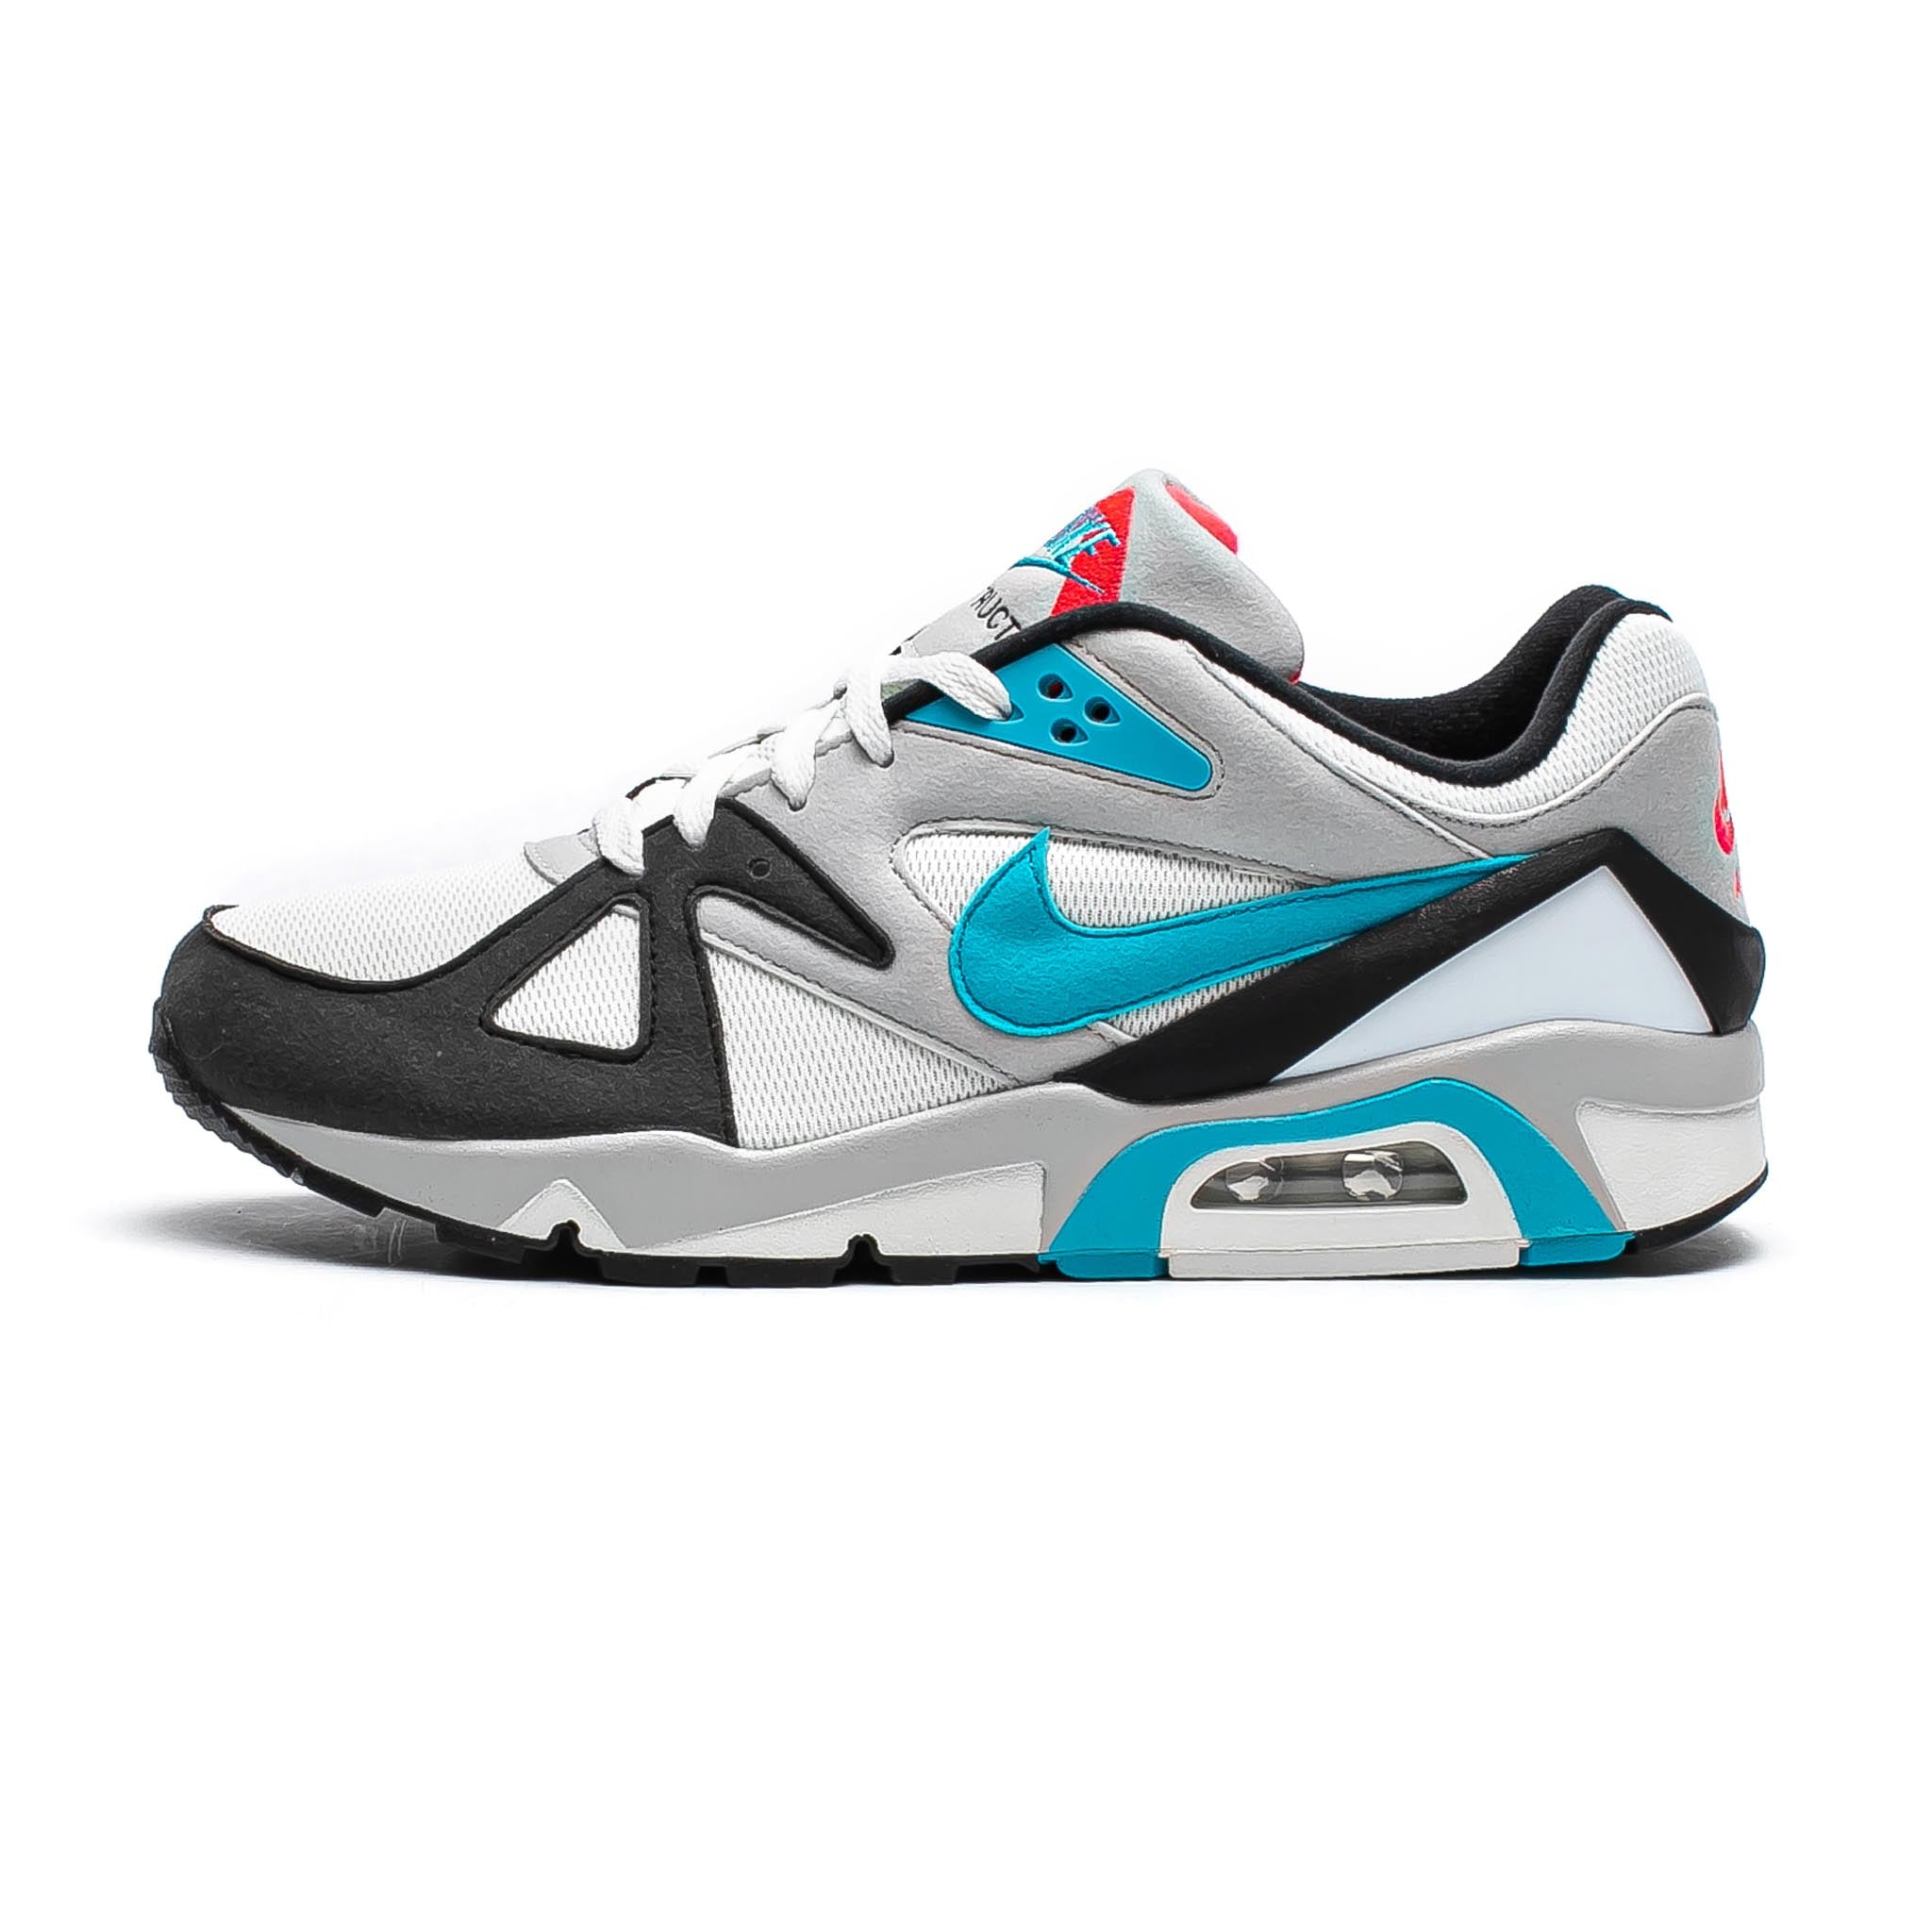 Nike Air Structure OG 'Summit White/Neo Teal'